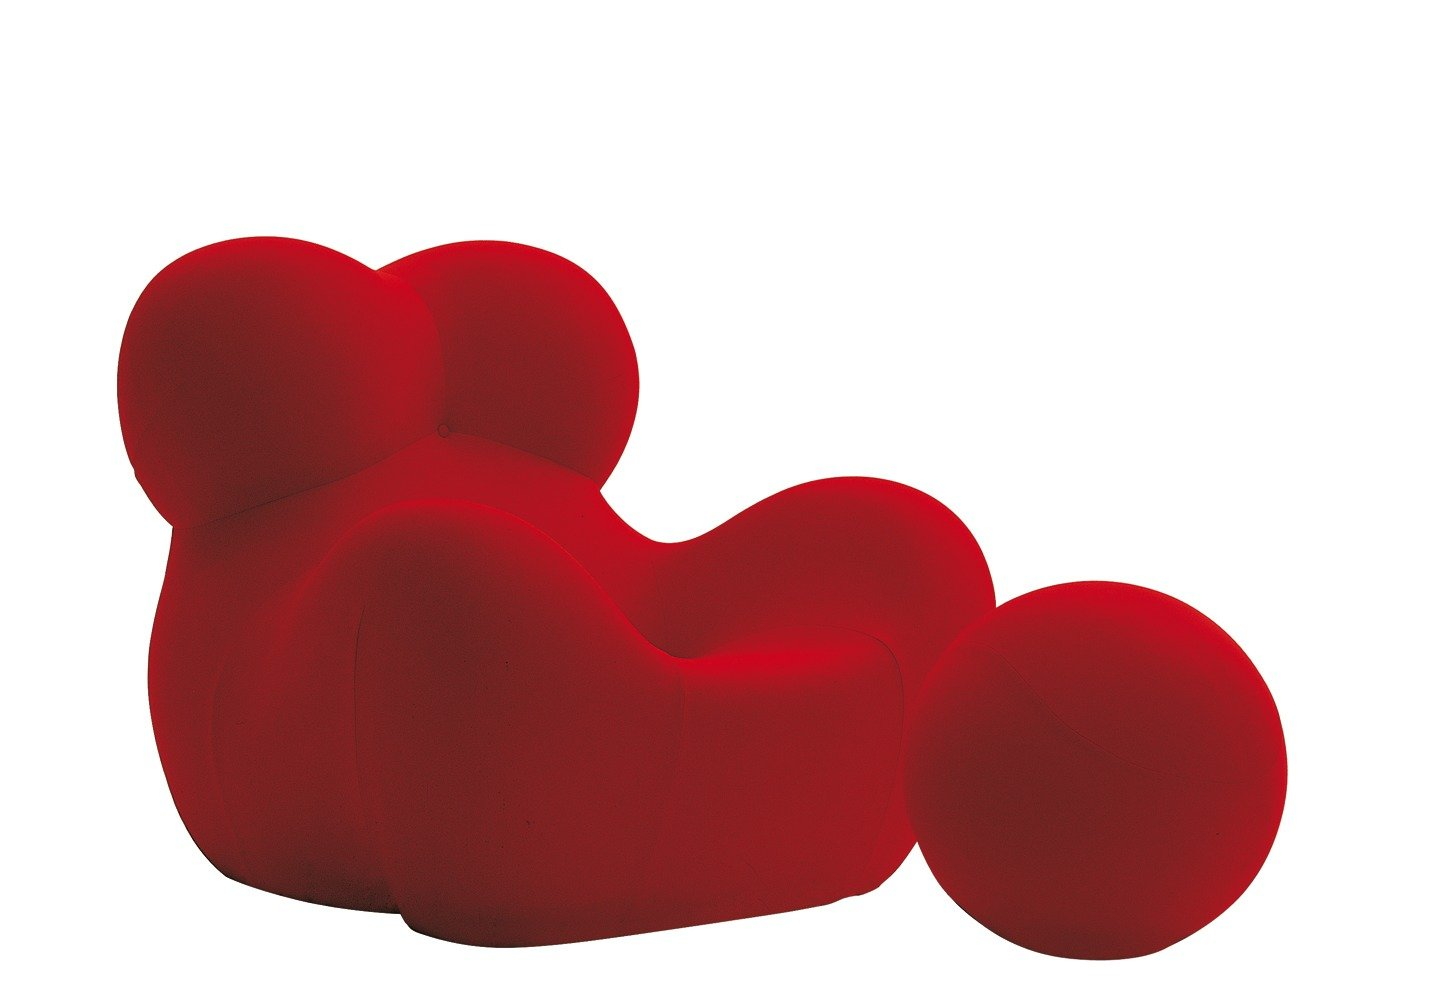 Gaetano pesce designophy designpedia for B b design